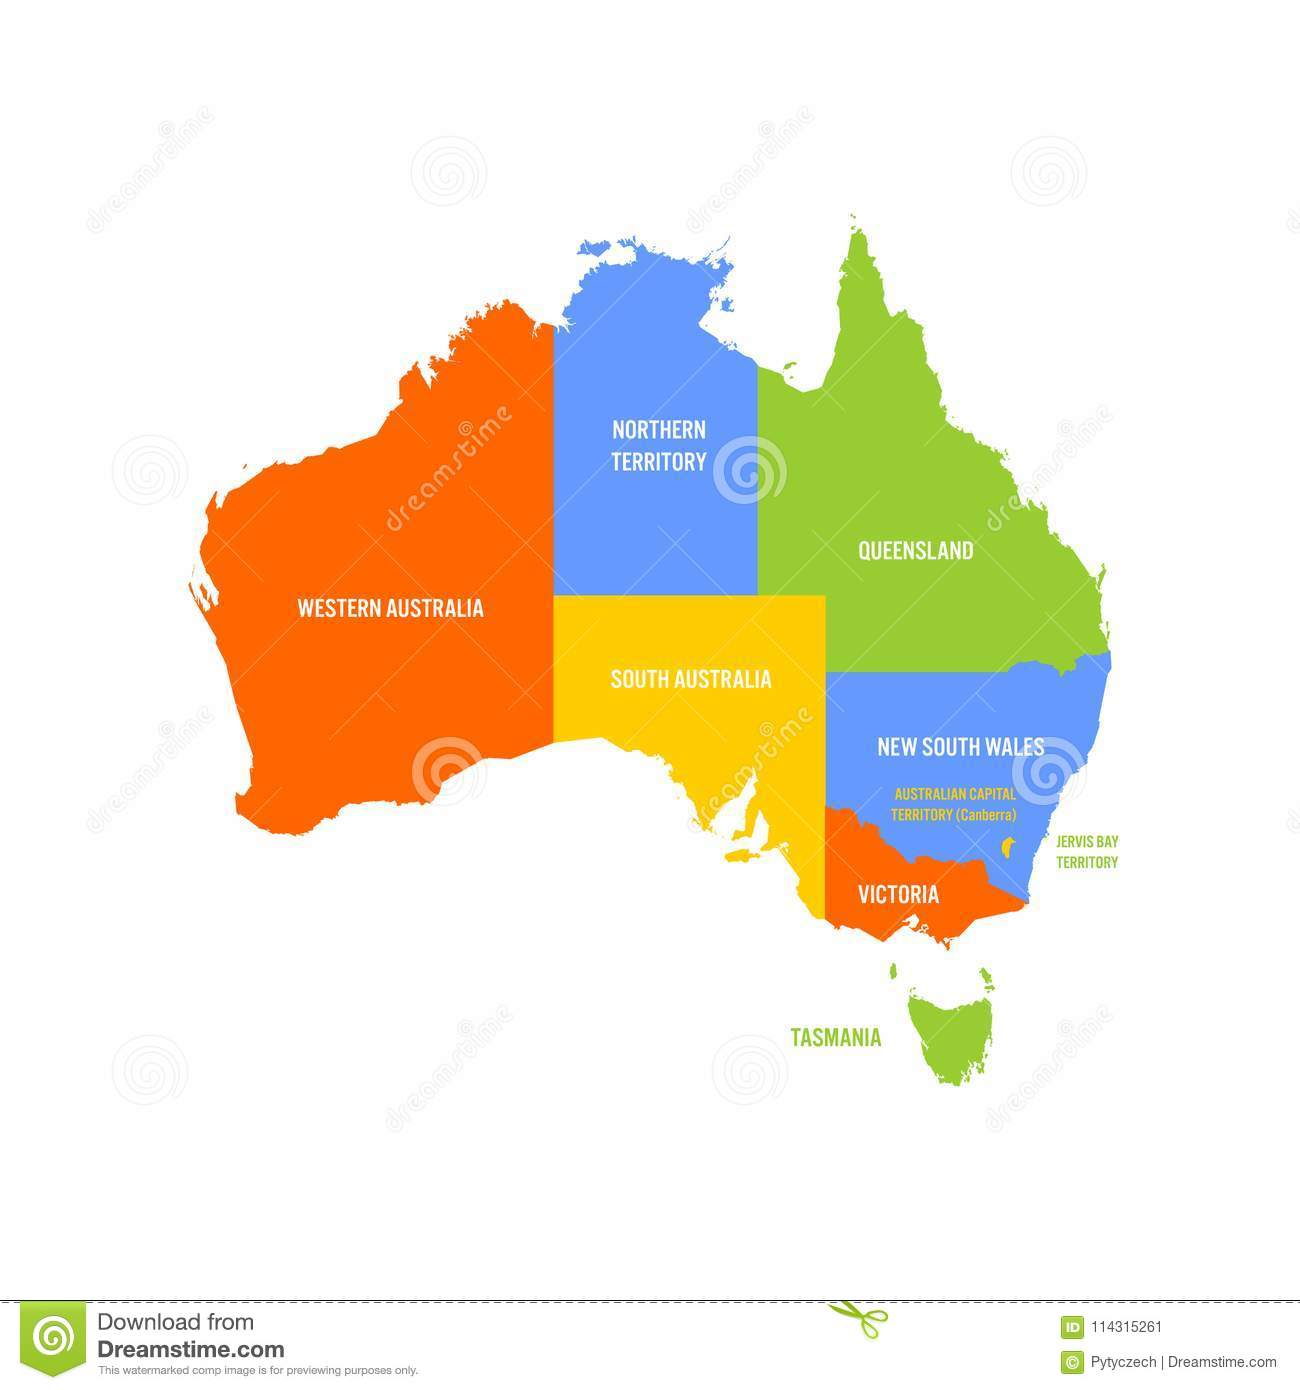 Australian State Map.Simplified Map Of Australia Divided Into States And Territories